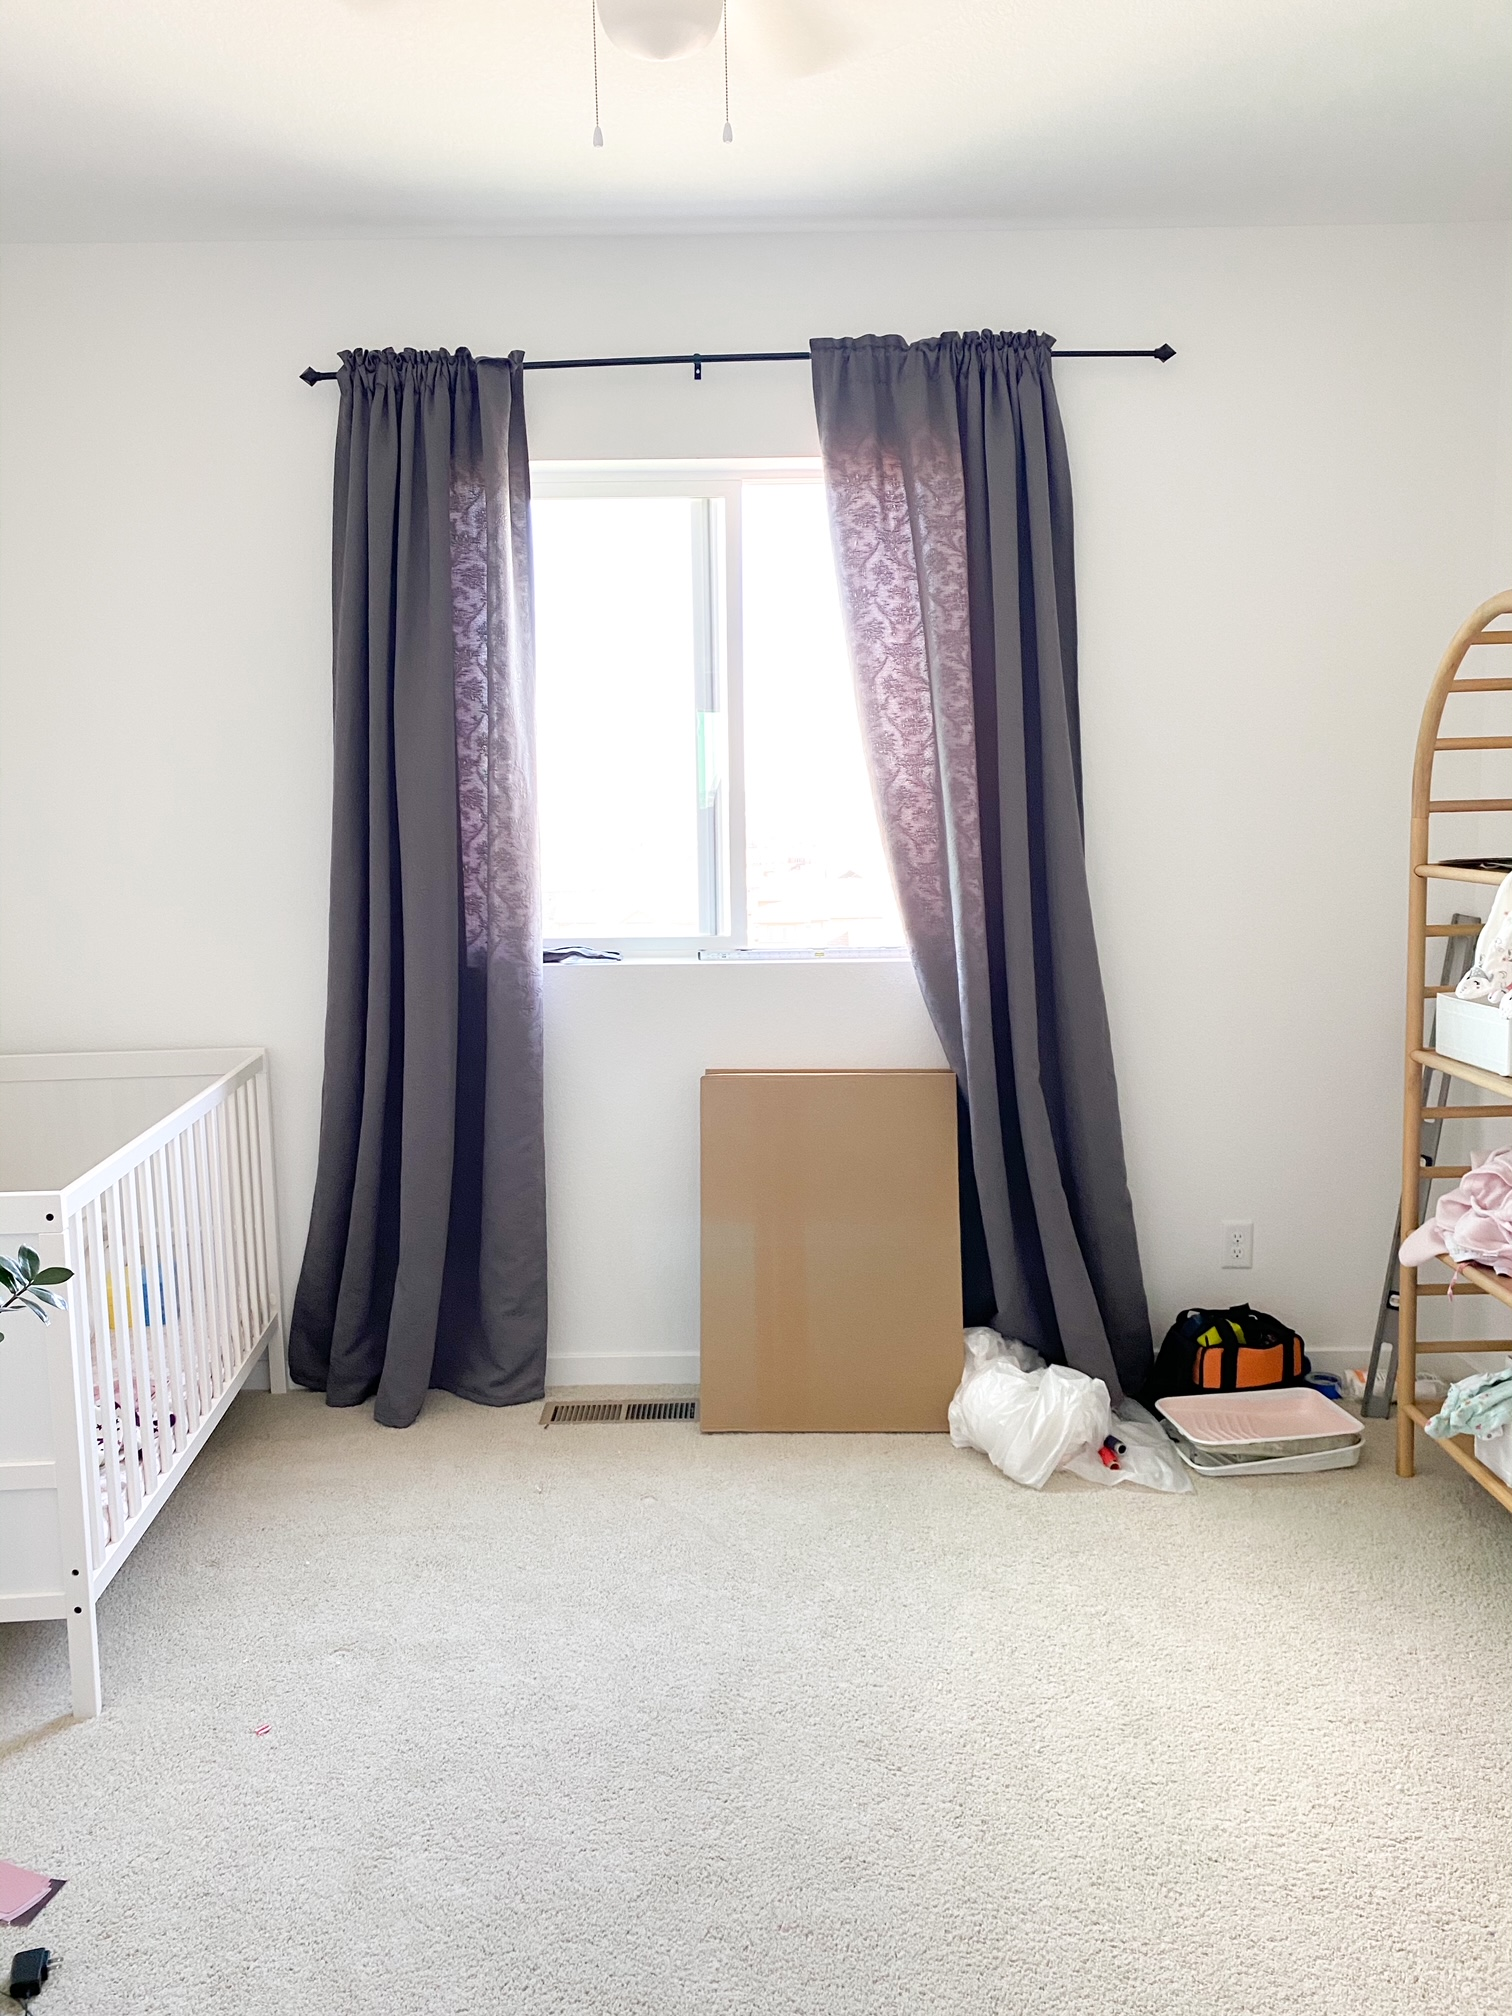 Room with gray curtains